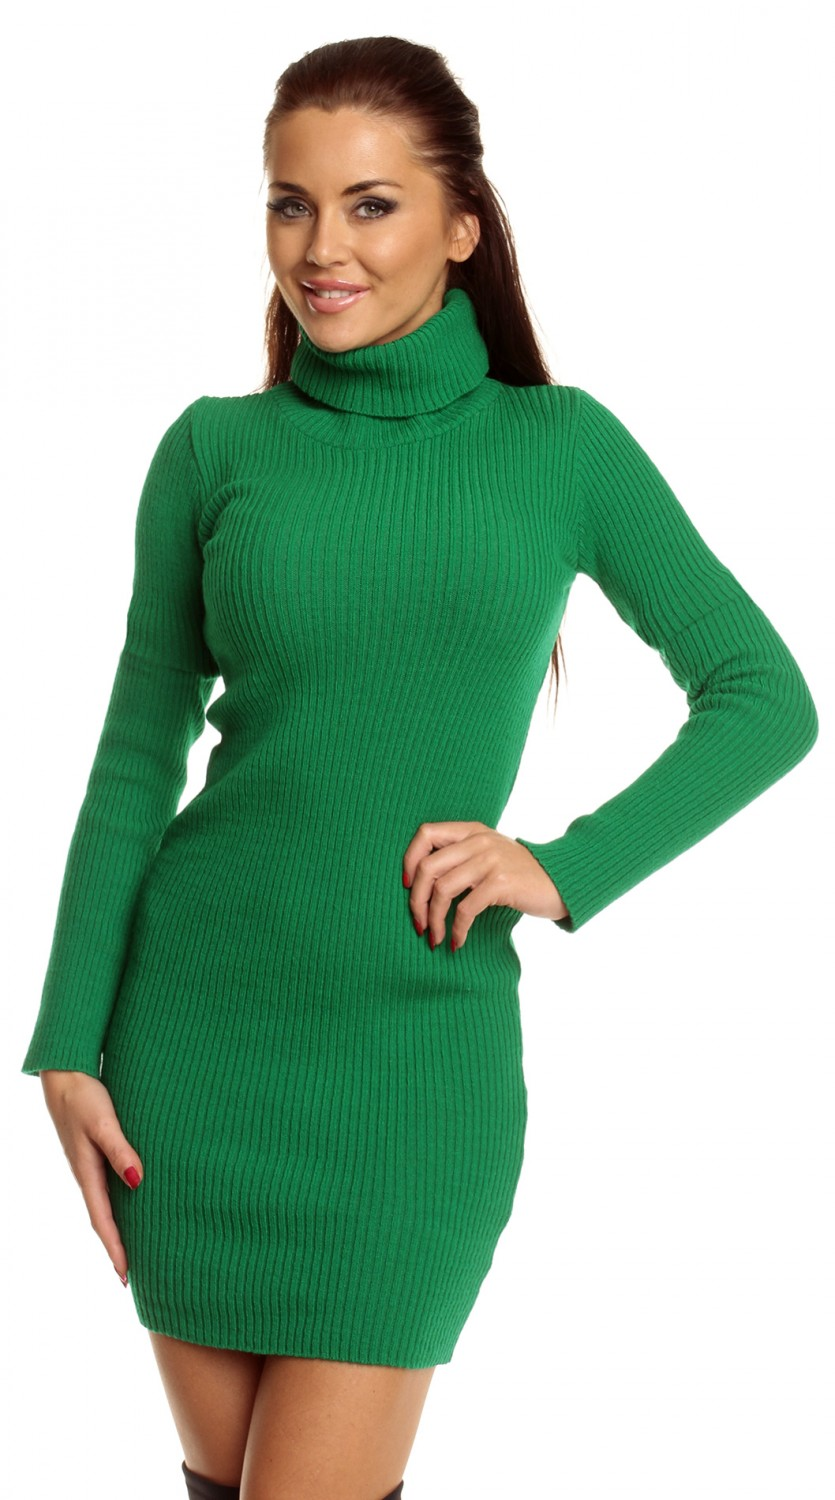 Women s stretch ribbed knit dress roll turtle neck long sleeve 417z